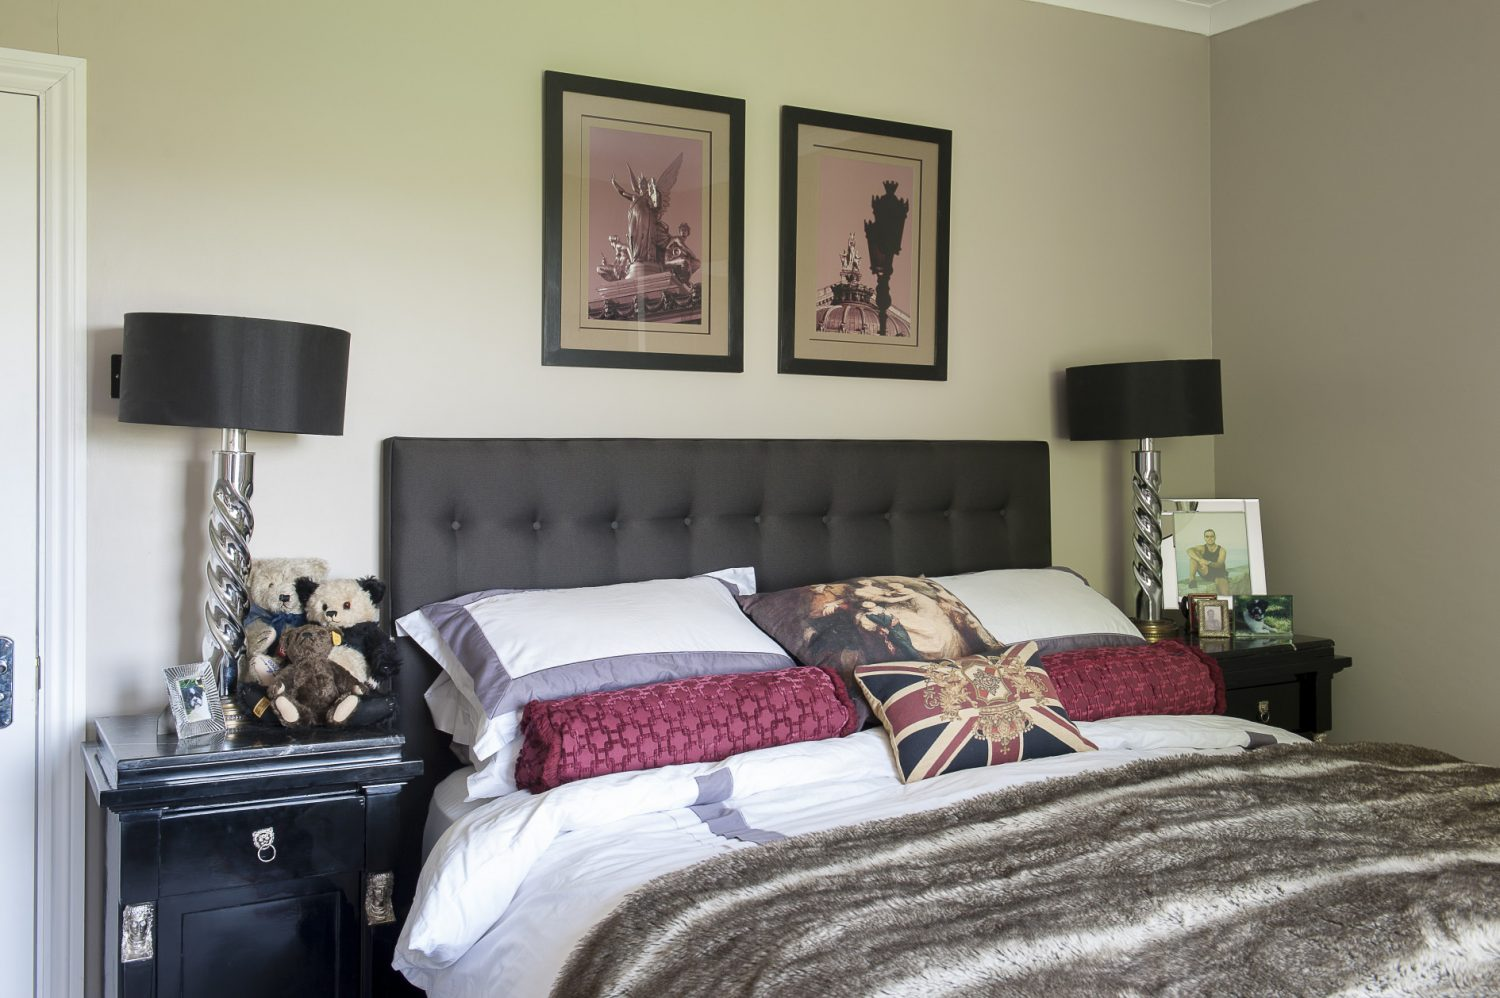 Black and white photographic prints in the master bedroom were taken by an official photographer to the French government